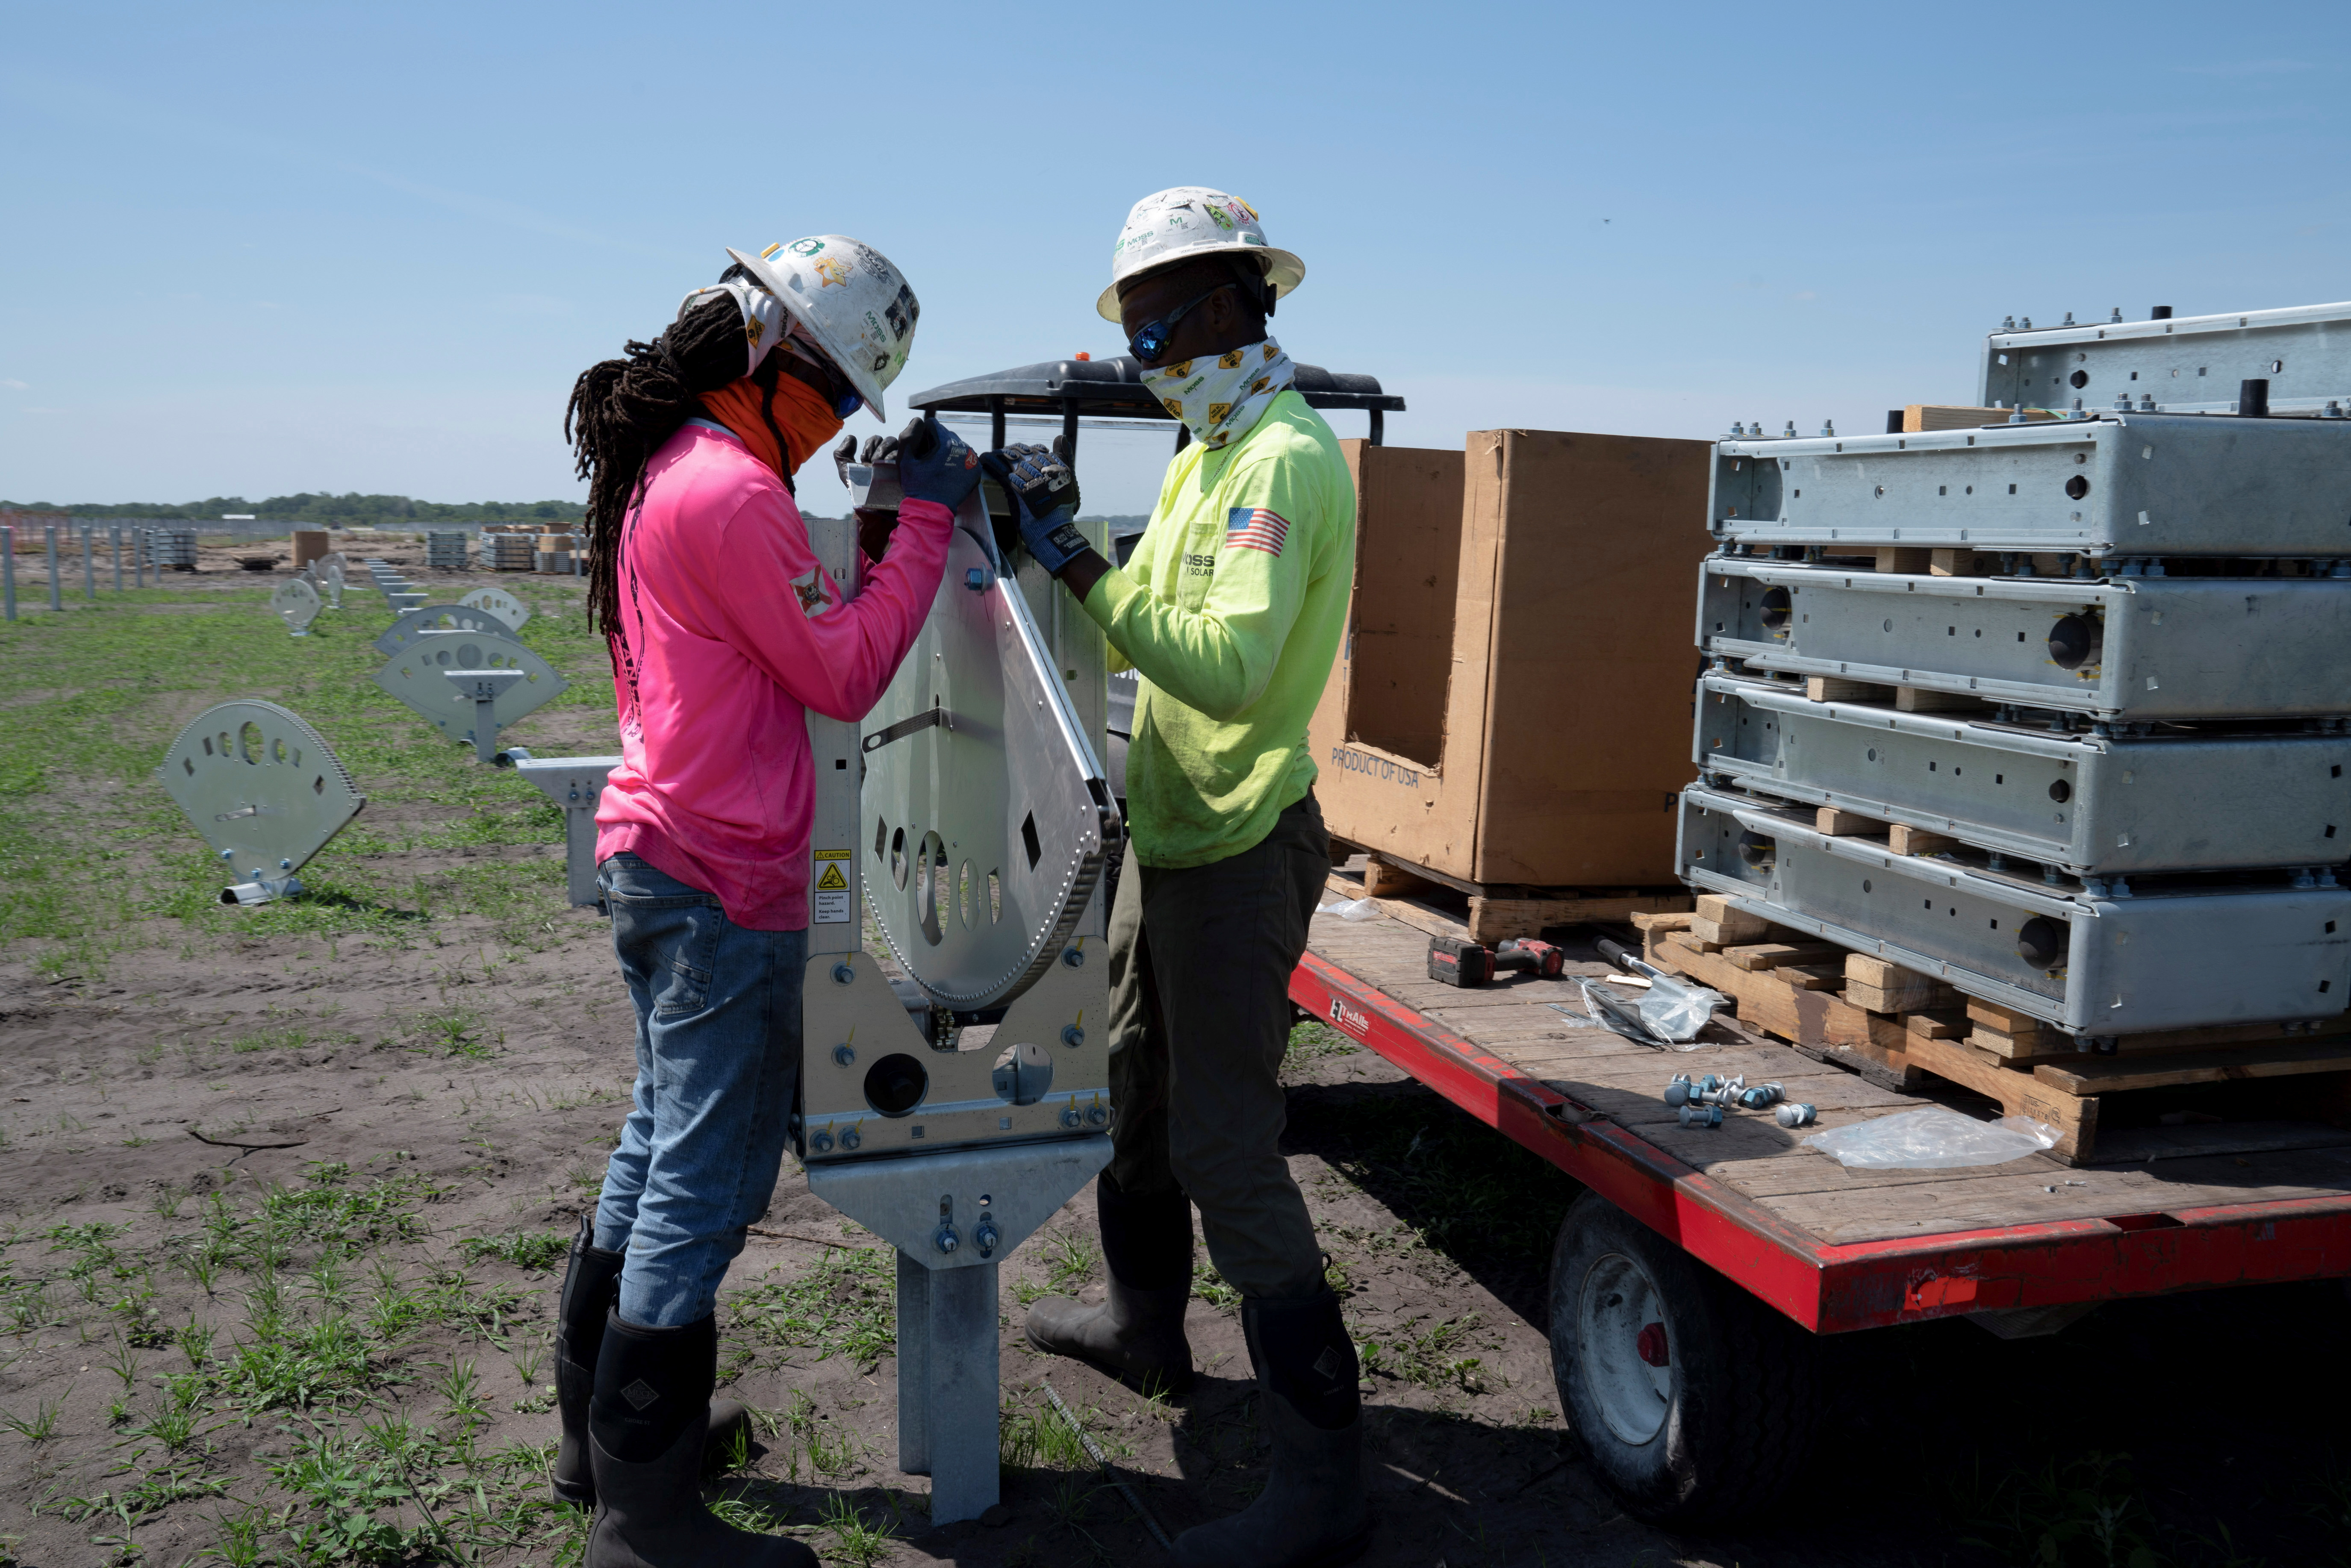 Construction workers Tekovin Miller and Darien Bailey install actuators for tilting panels at the Duette solar site which is being developed on previously agricultural land in Bowling Green, Florida, U.S., March 24, 2021.  REUTERS/Dane Rhys